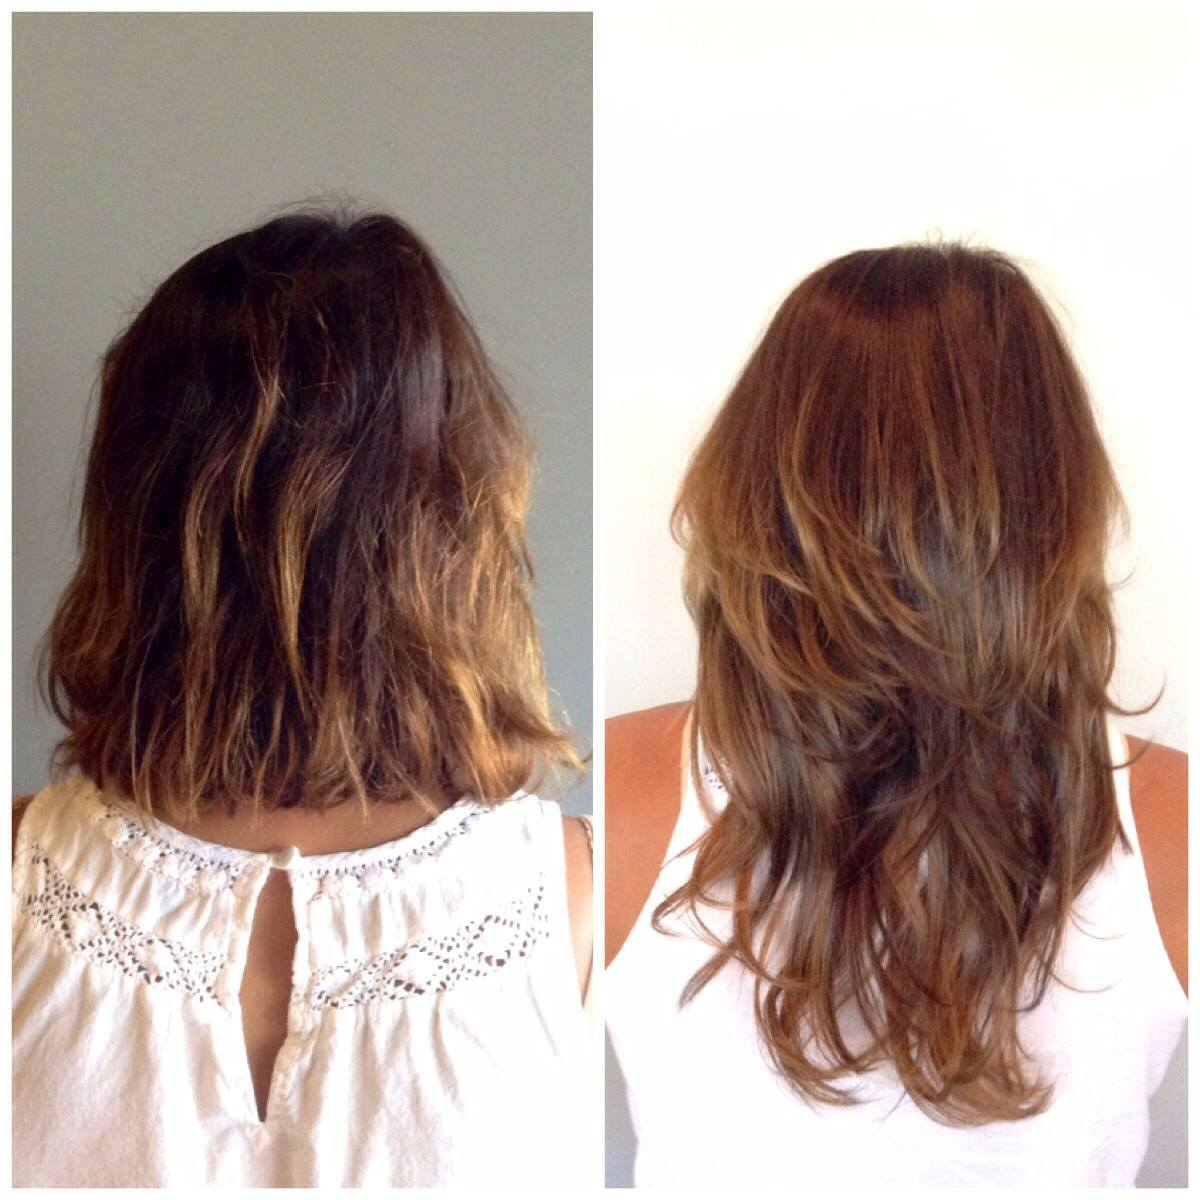 Vomor tape in extensions salonspa by our sertified5 talented team vomor provides volume thickness and color that creates beauty and confidence for women with fine or thinning hair pmusecretfo Choice Image